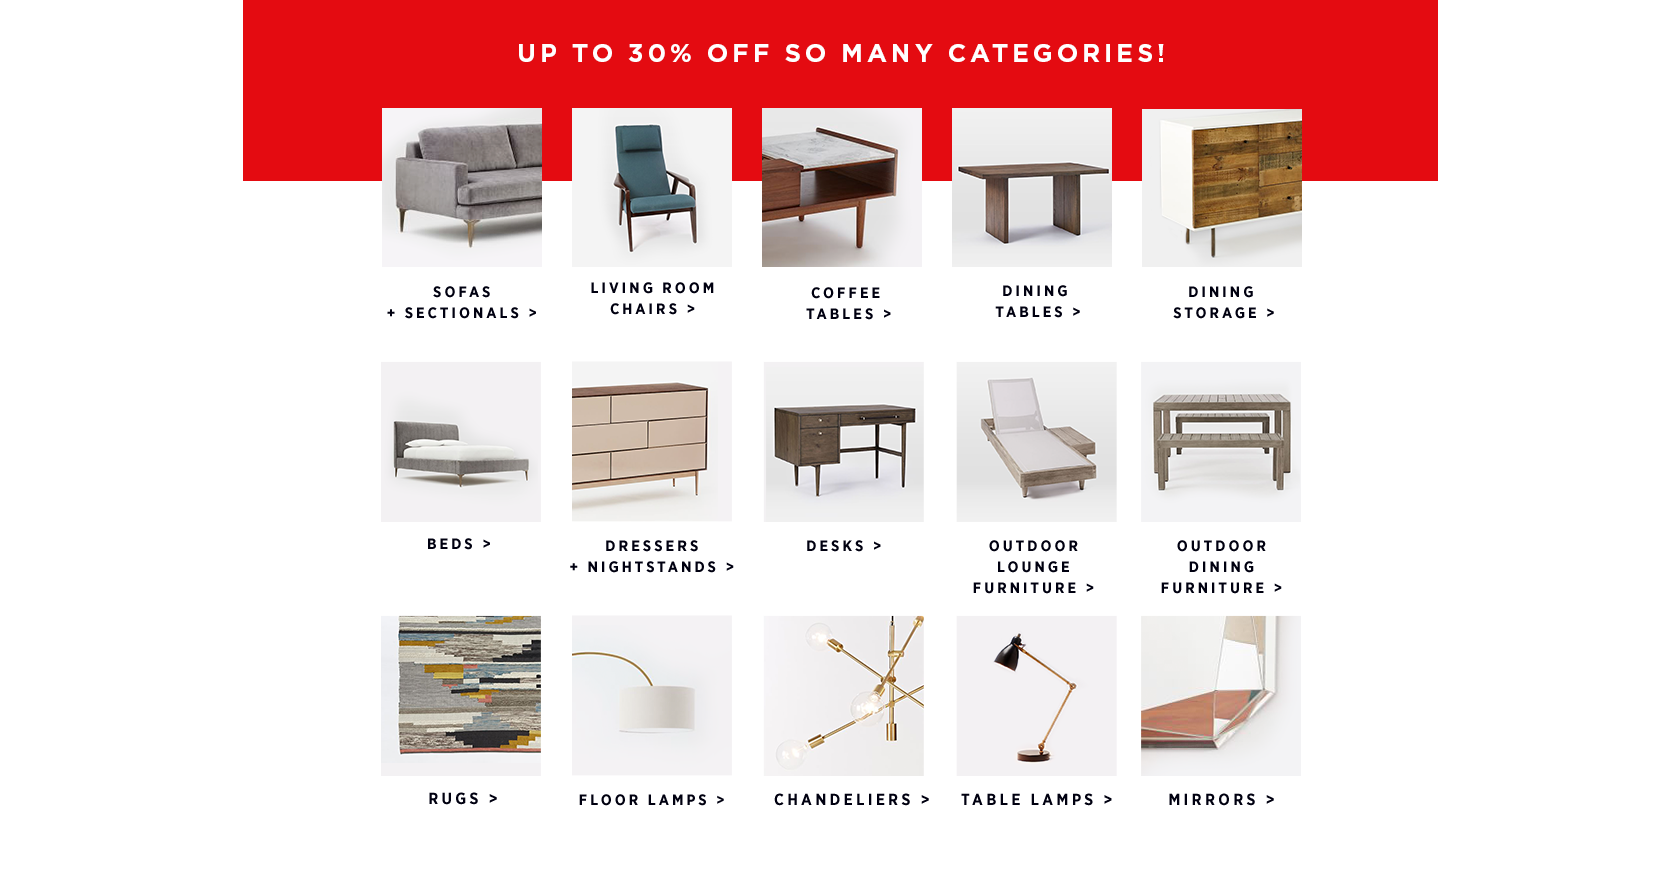 Up To 30% Off So Many Categories!